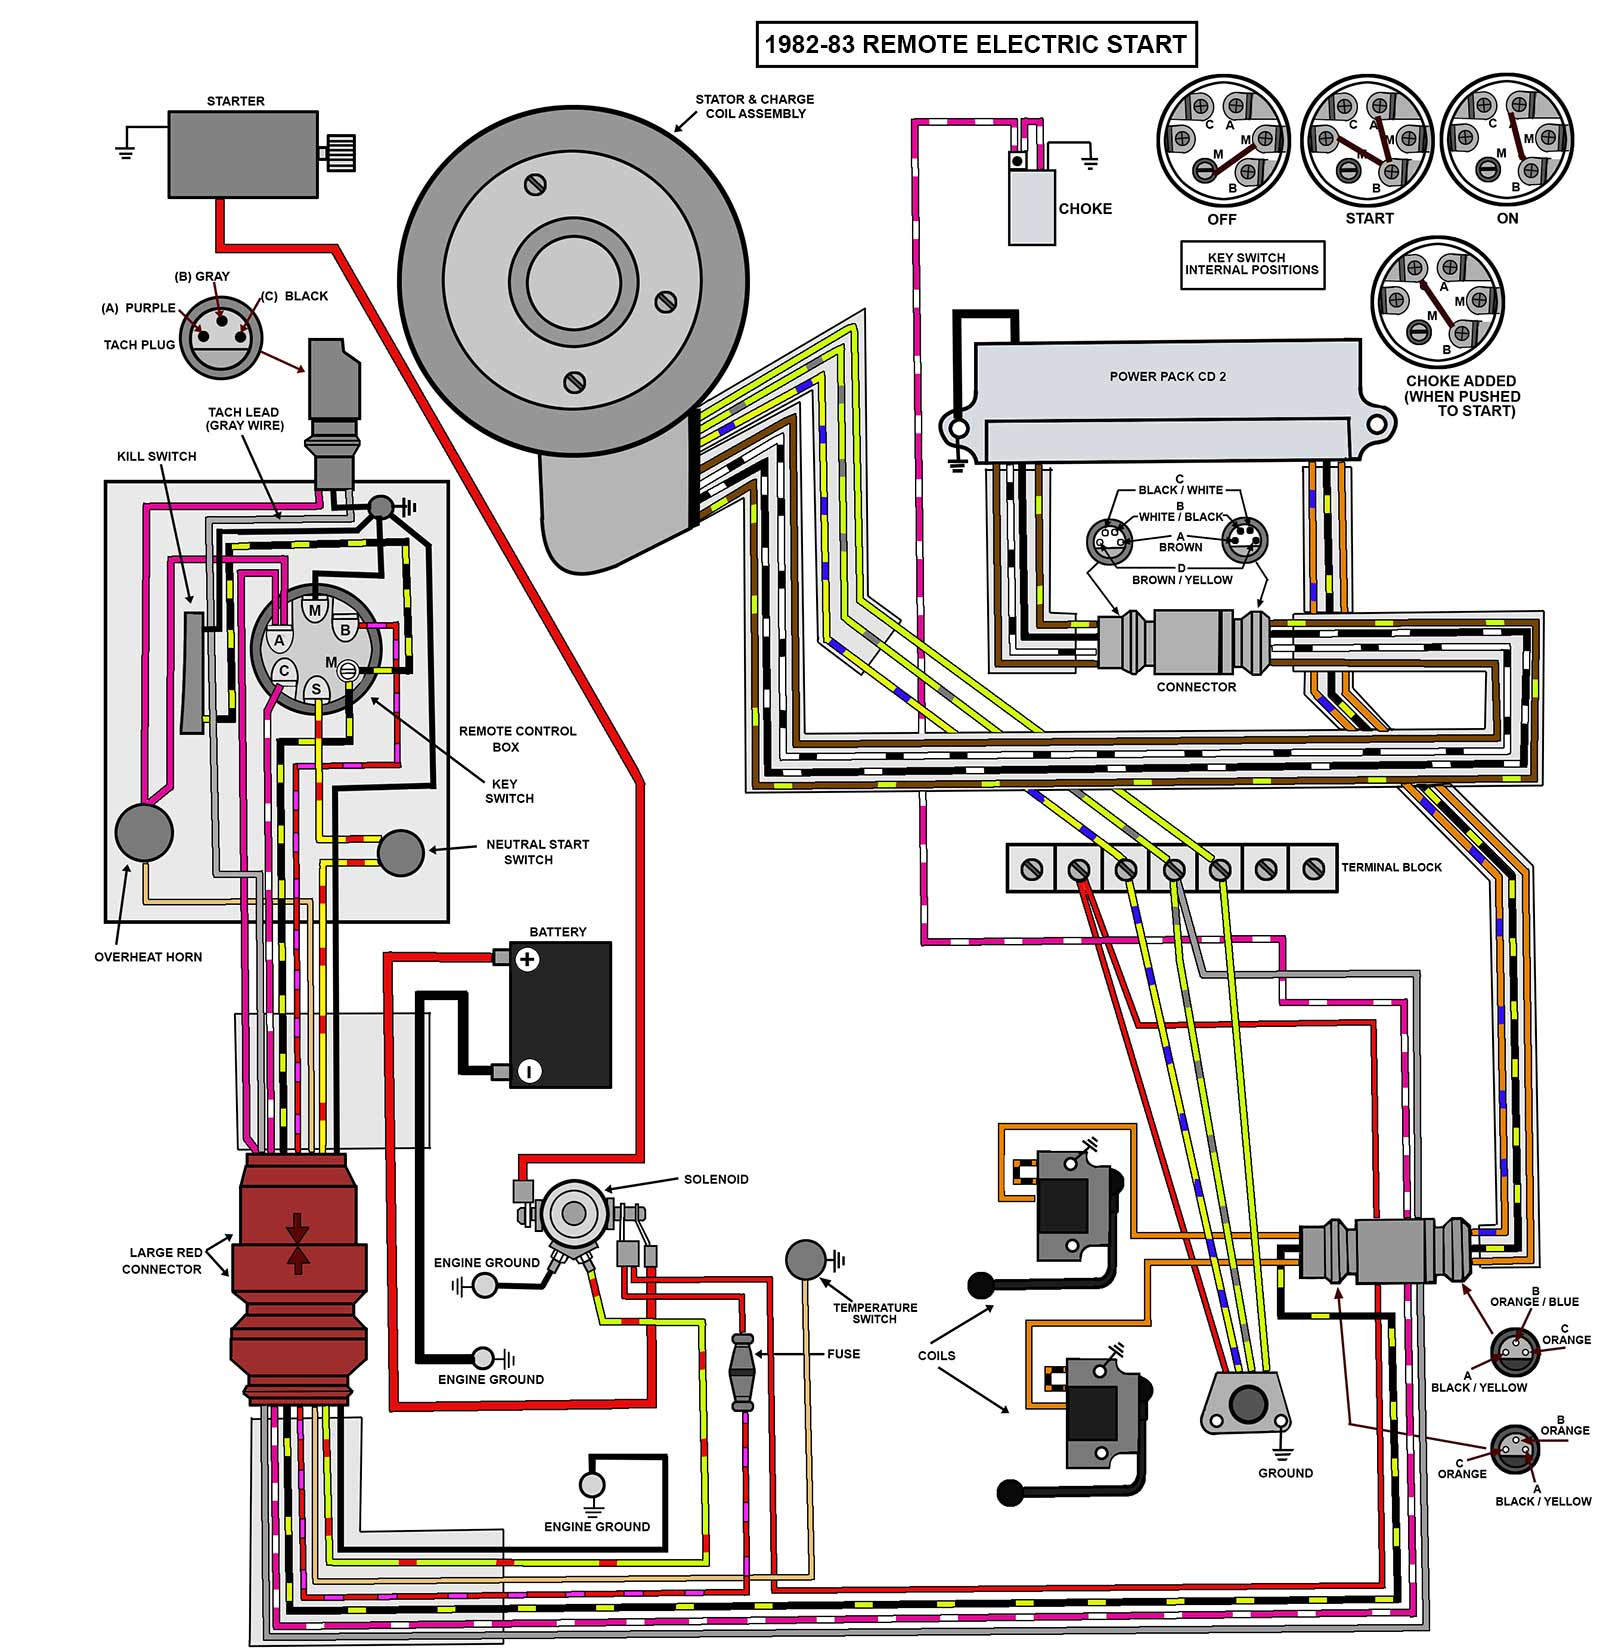 25_35_82 83_elec remote mastertech marine evinrude johnson outboard wiring diagrams wiring diagram for johnson outboard motor at mifinder.co